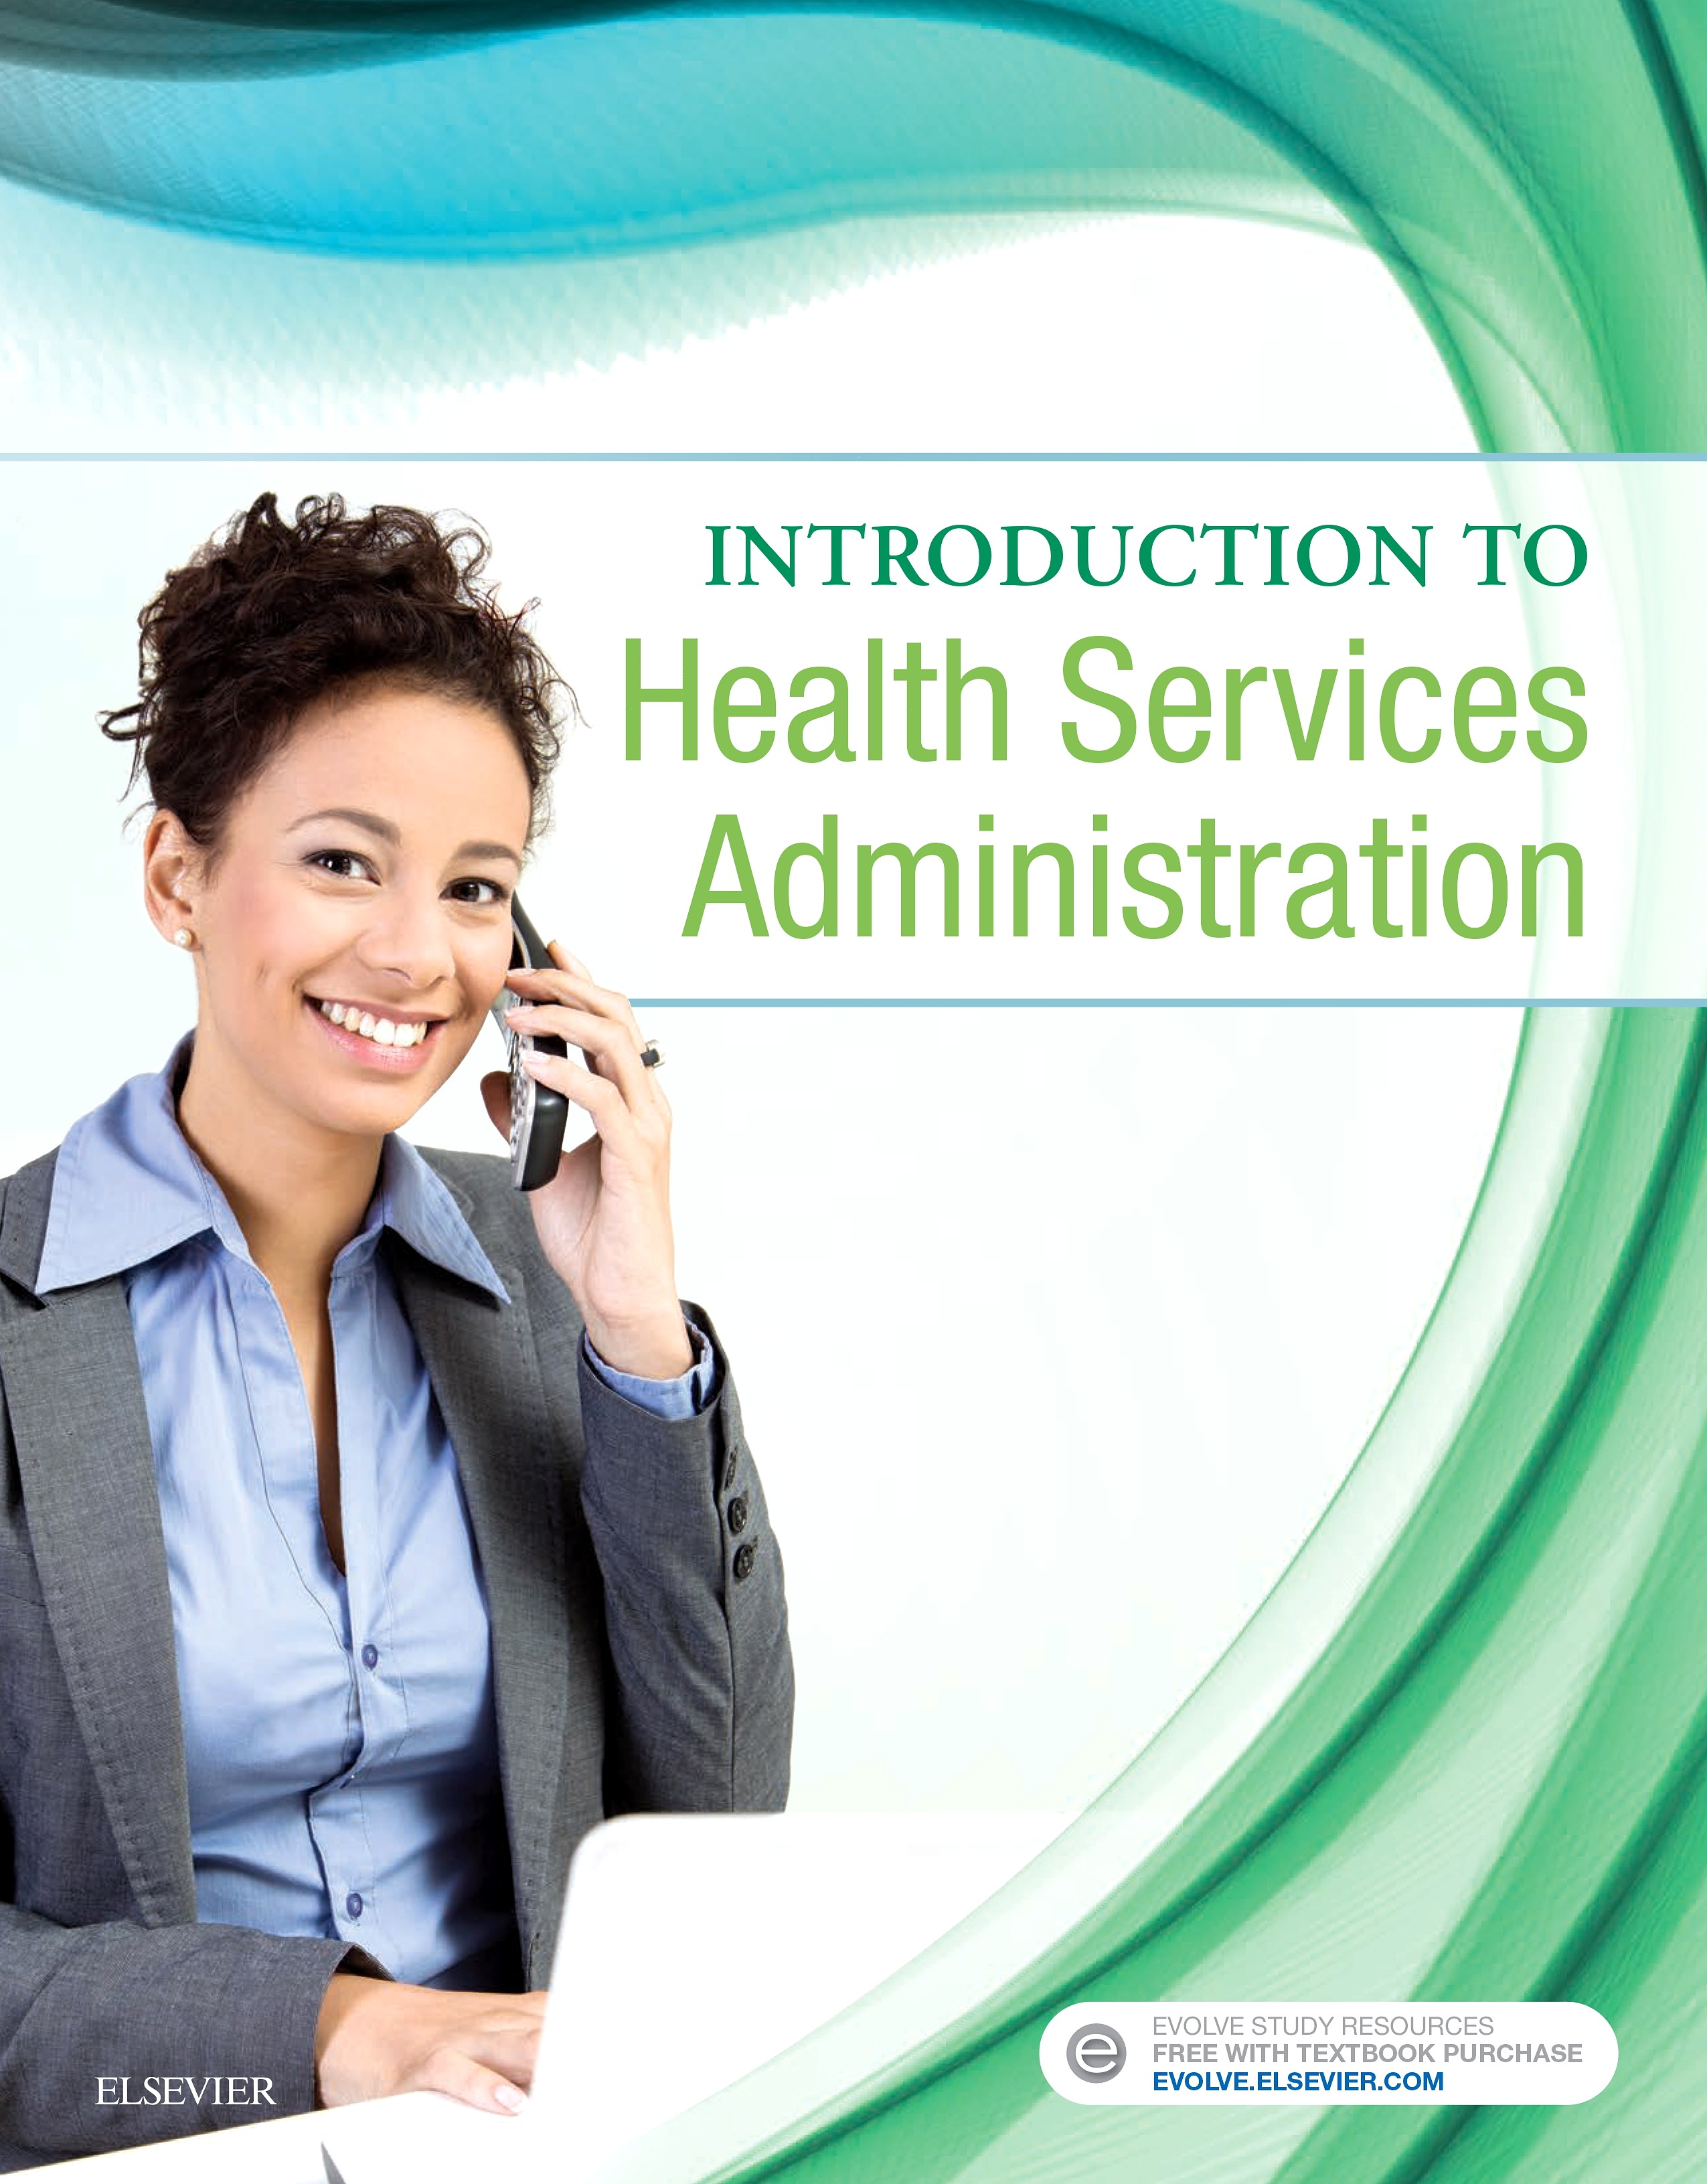 Evolve Resources for Introduction to Health Services Administration